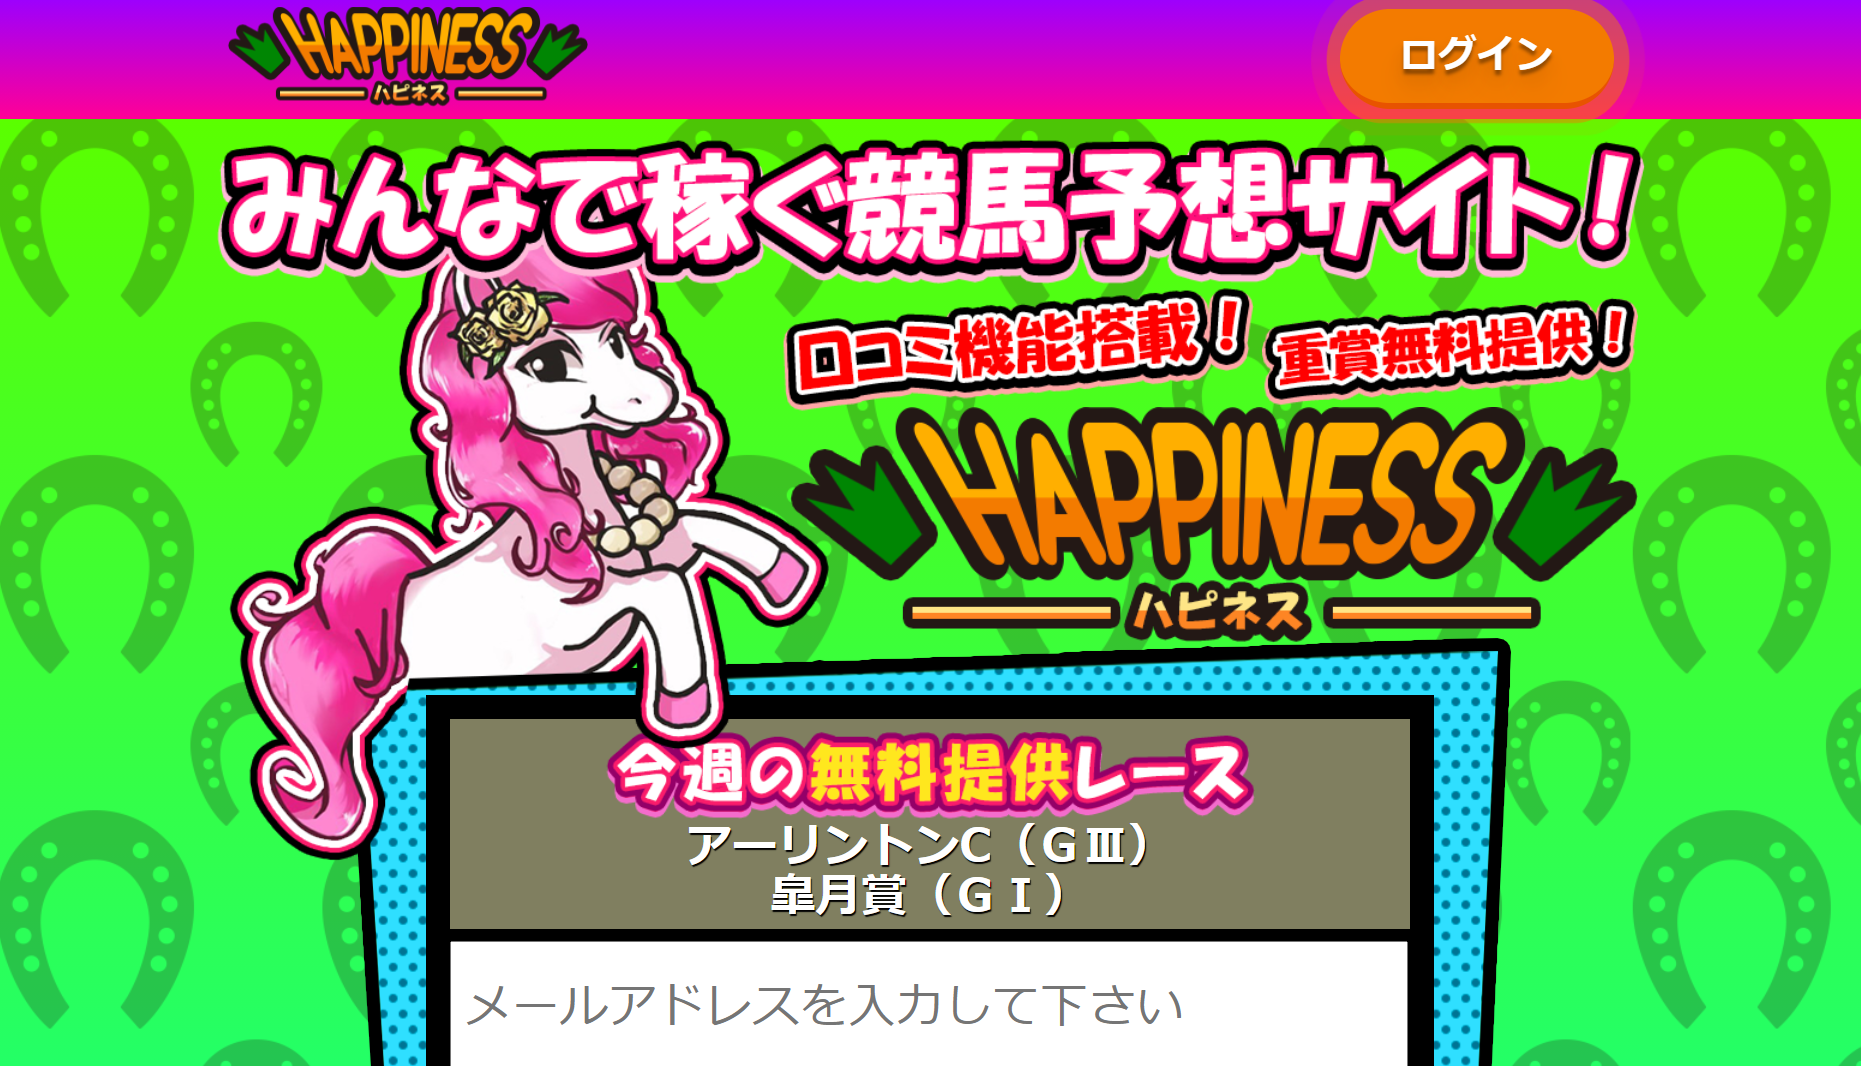 HAPPINESS(ハピネス)の口コミ・評判・評価